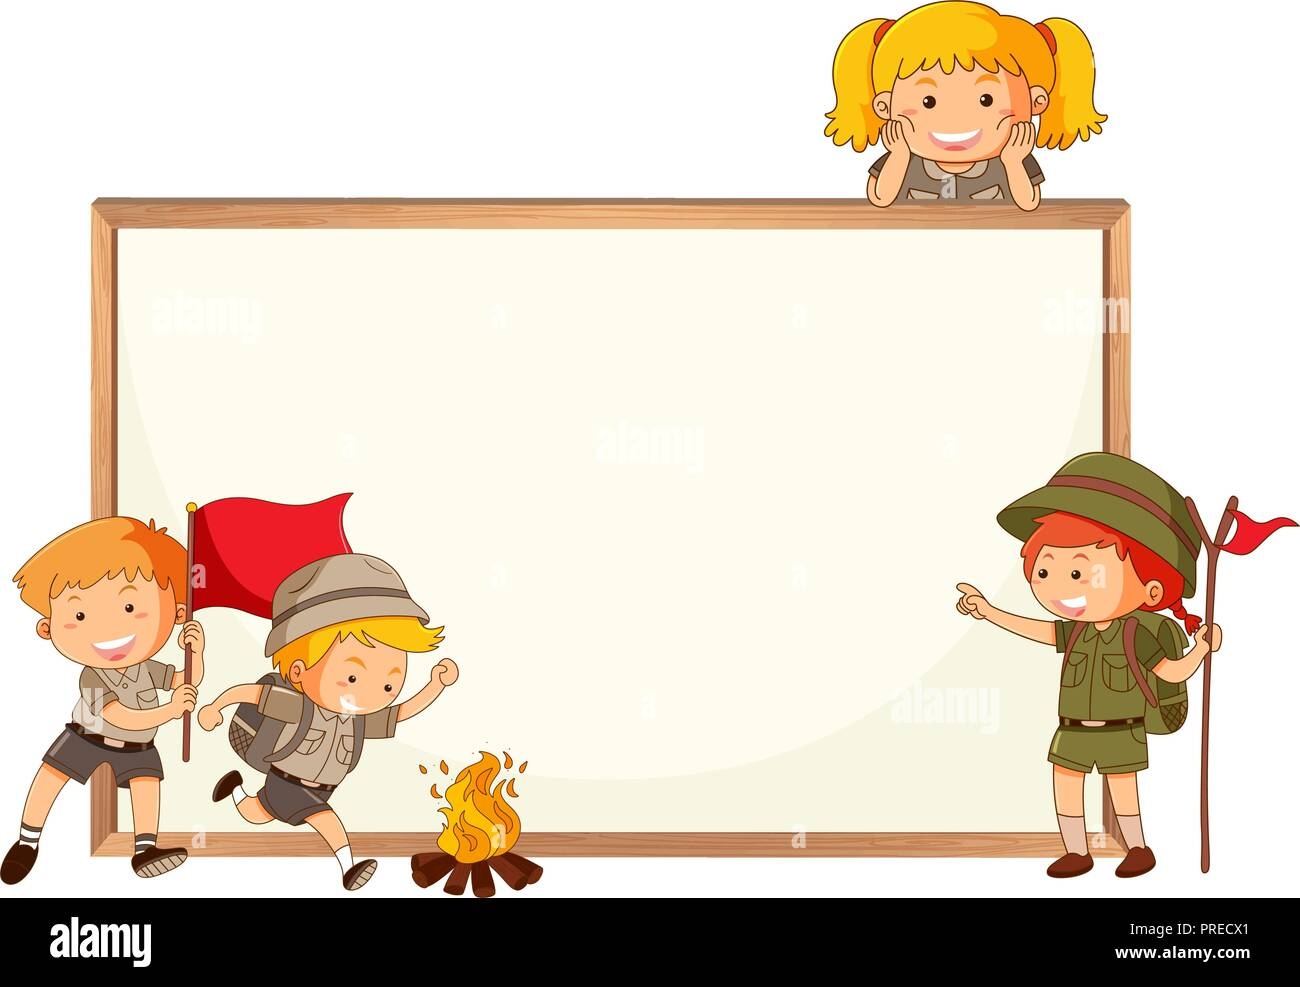 Boy and girl scout and whiteboard frame illustration - Stock Vector